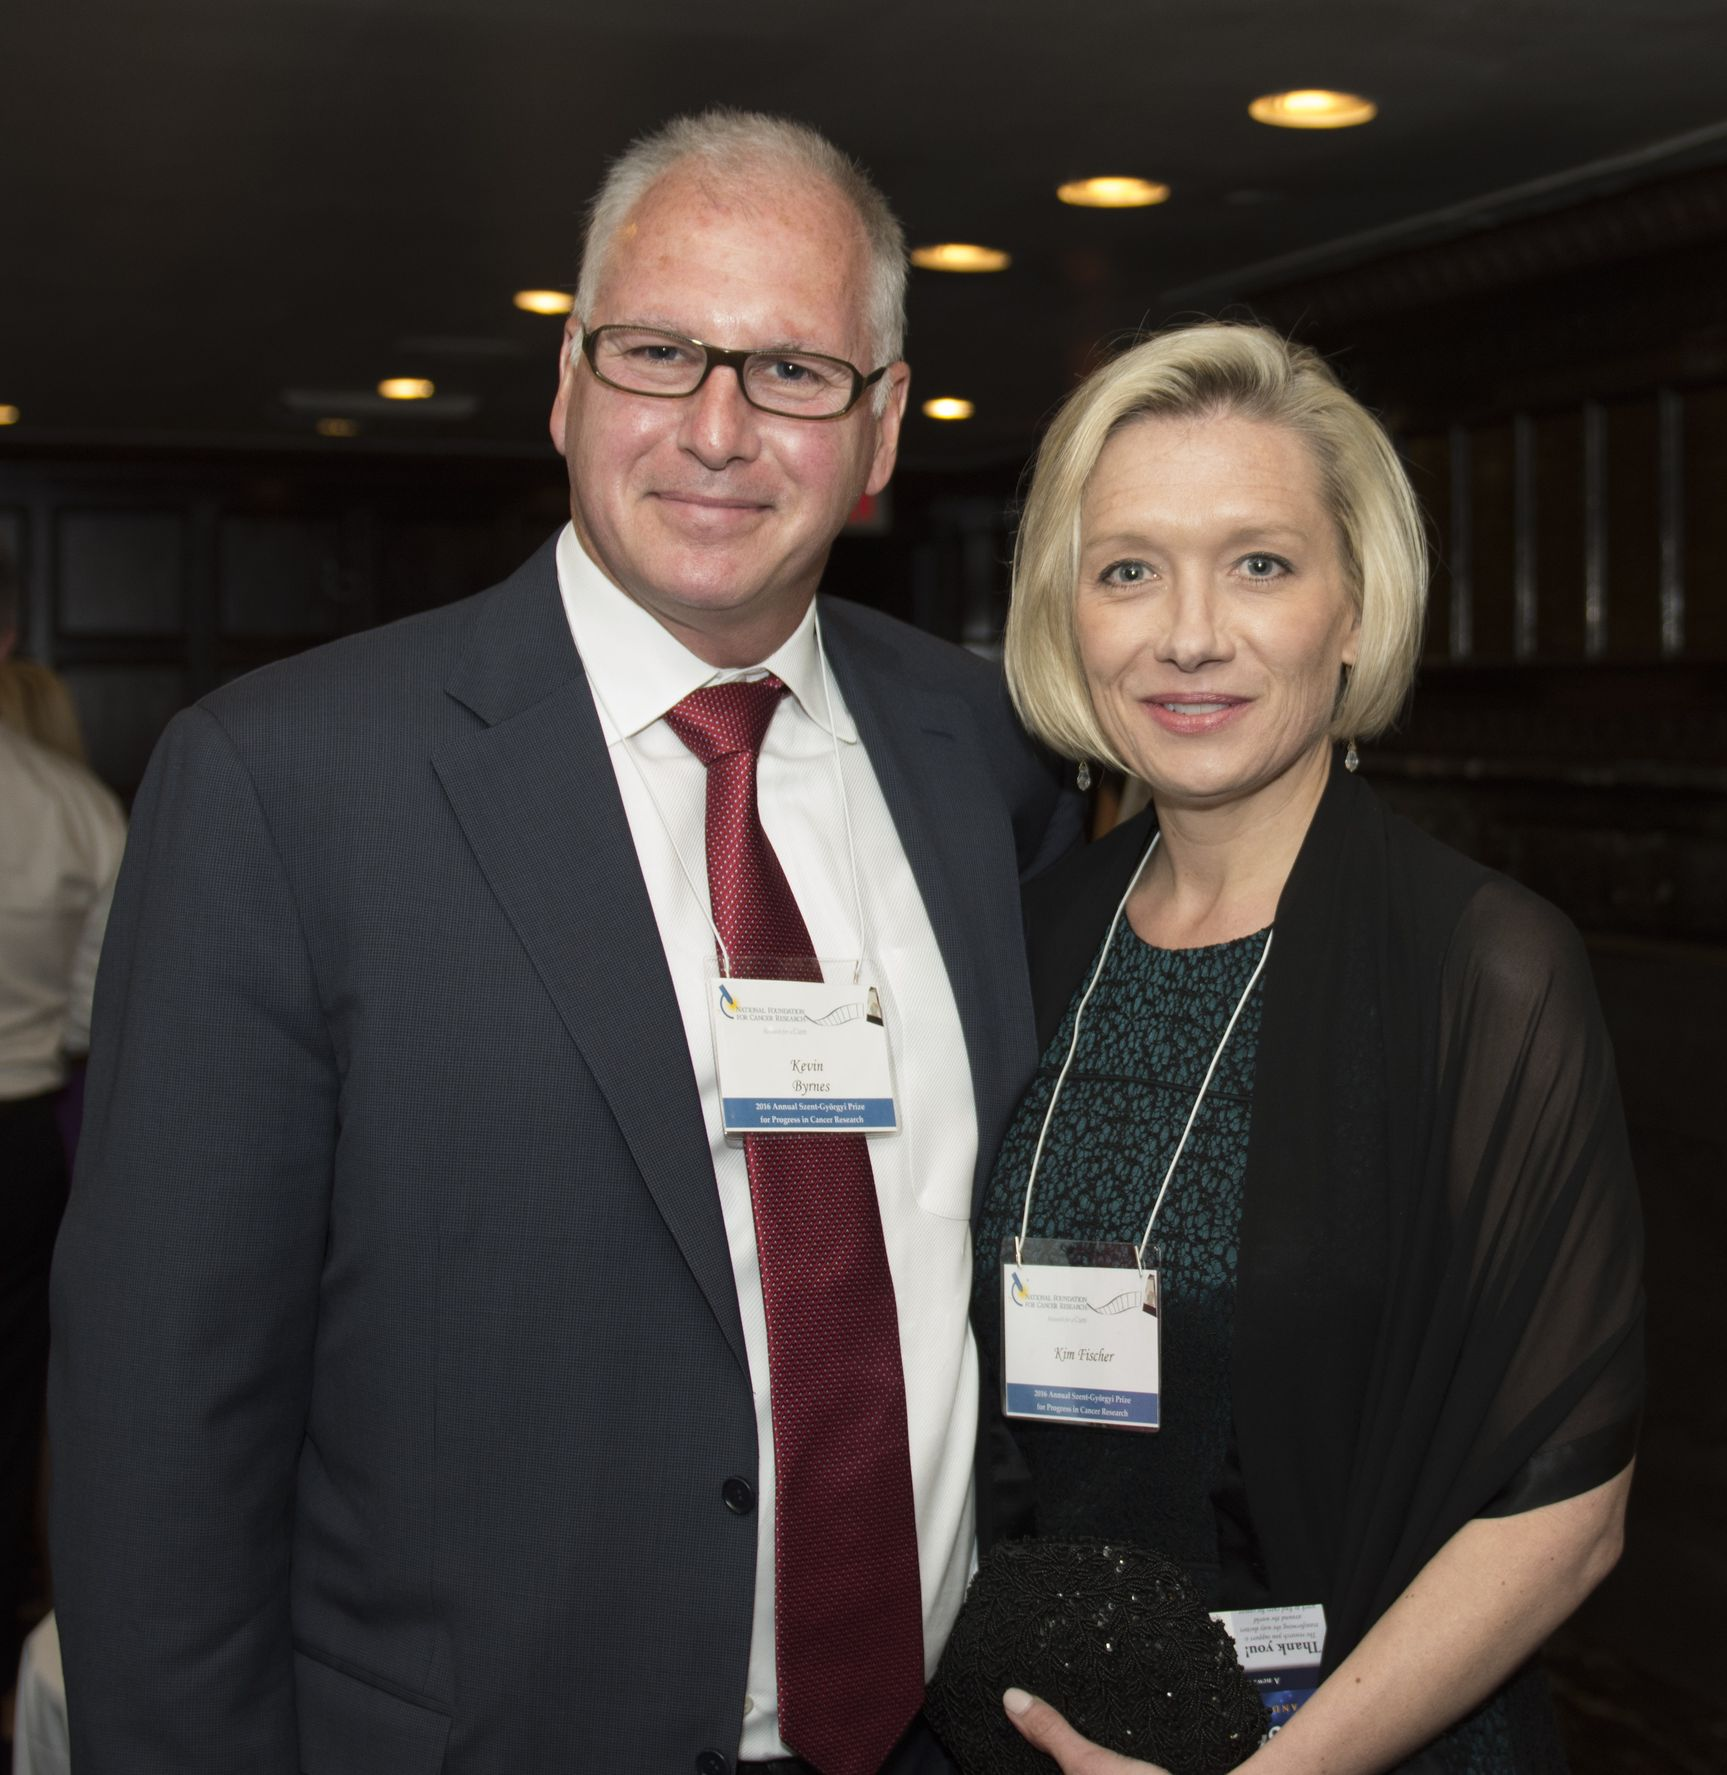 NFCR supporters, attorney Kevin Byrnes with Kim Fischer, capture a moment at the reception